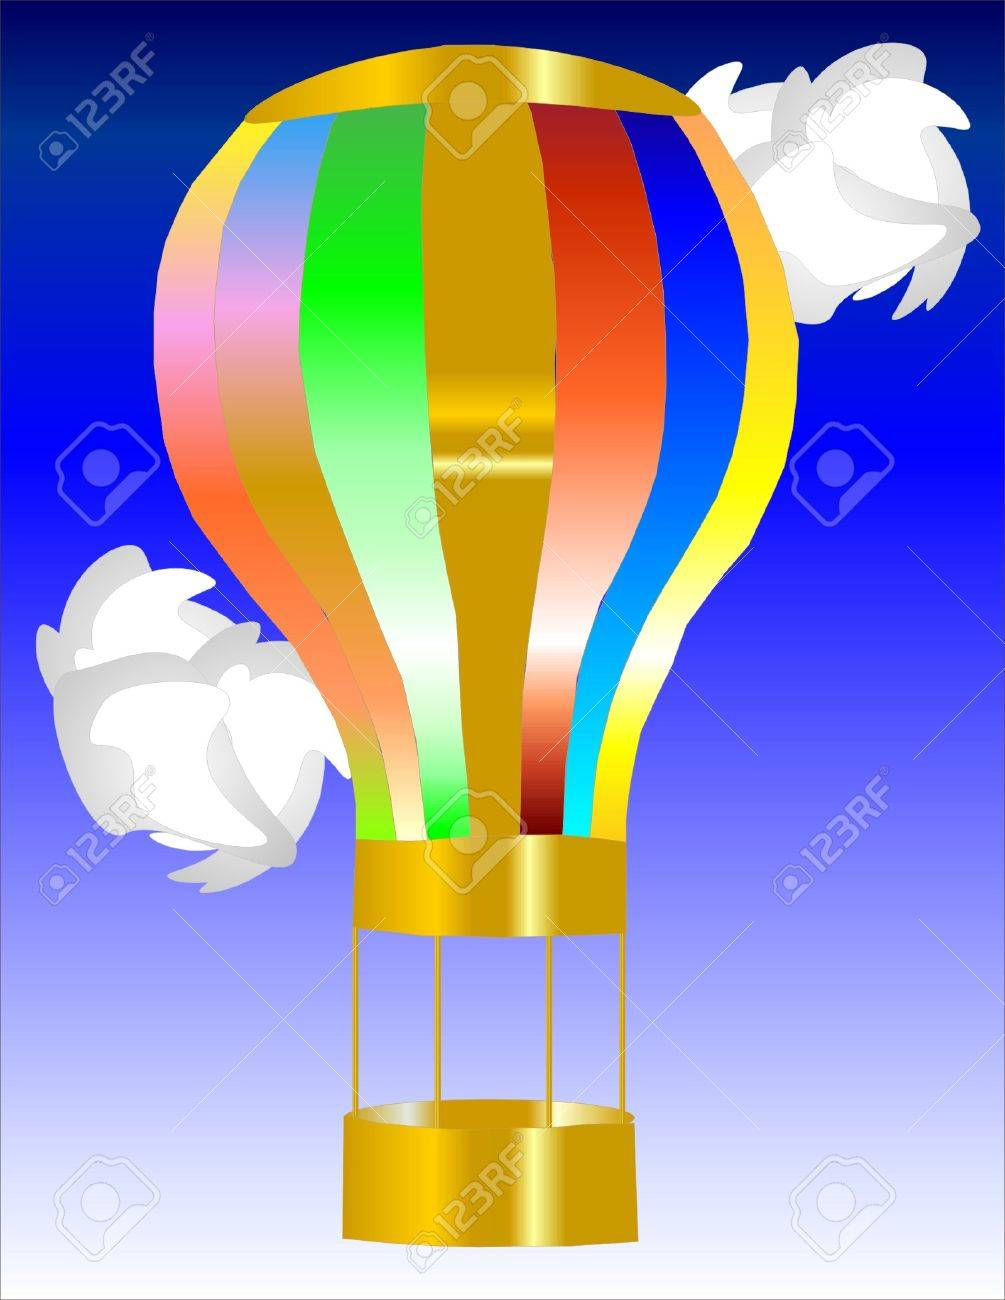 Hot air ballon in the sky with clouds Stock Vector - 3651899